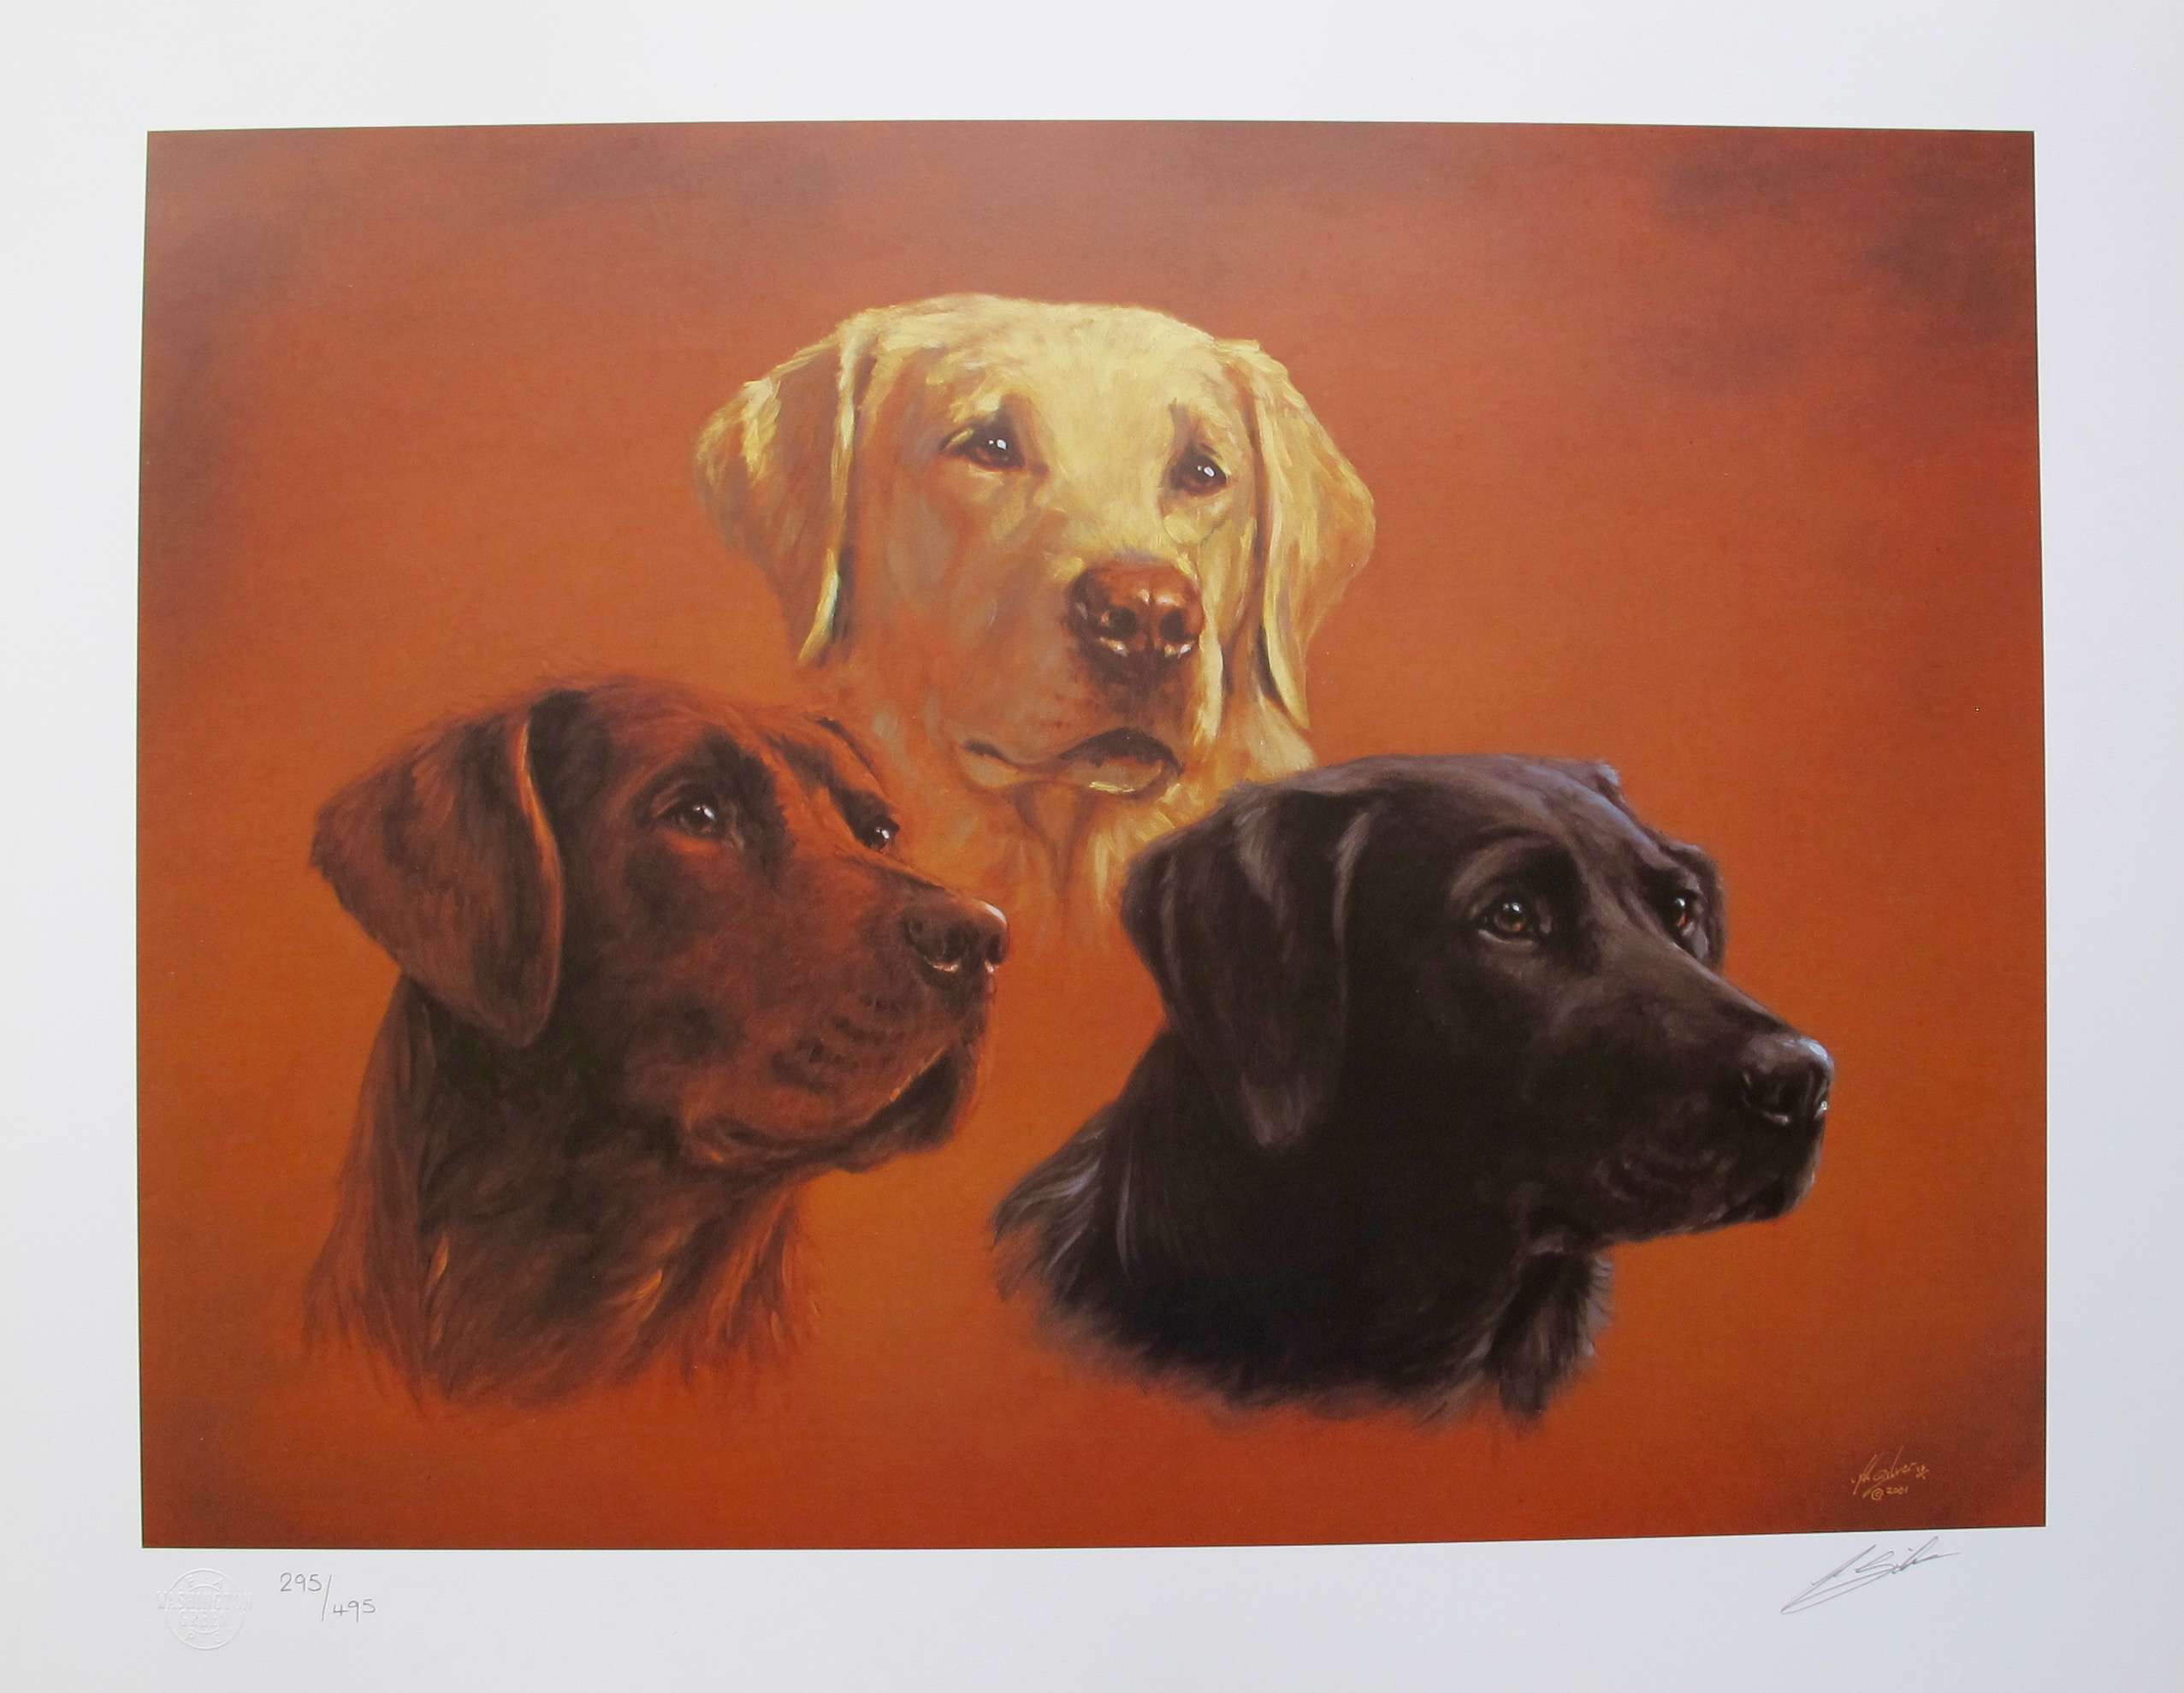 JOHN SILVER FAITH HOPE & CHARITY DOGS Hand Signed Limited Edition Art Lithograph